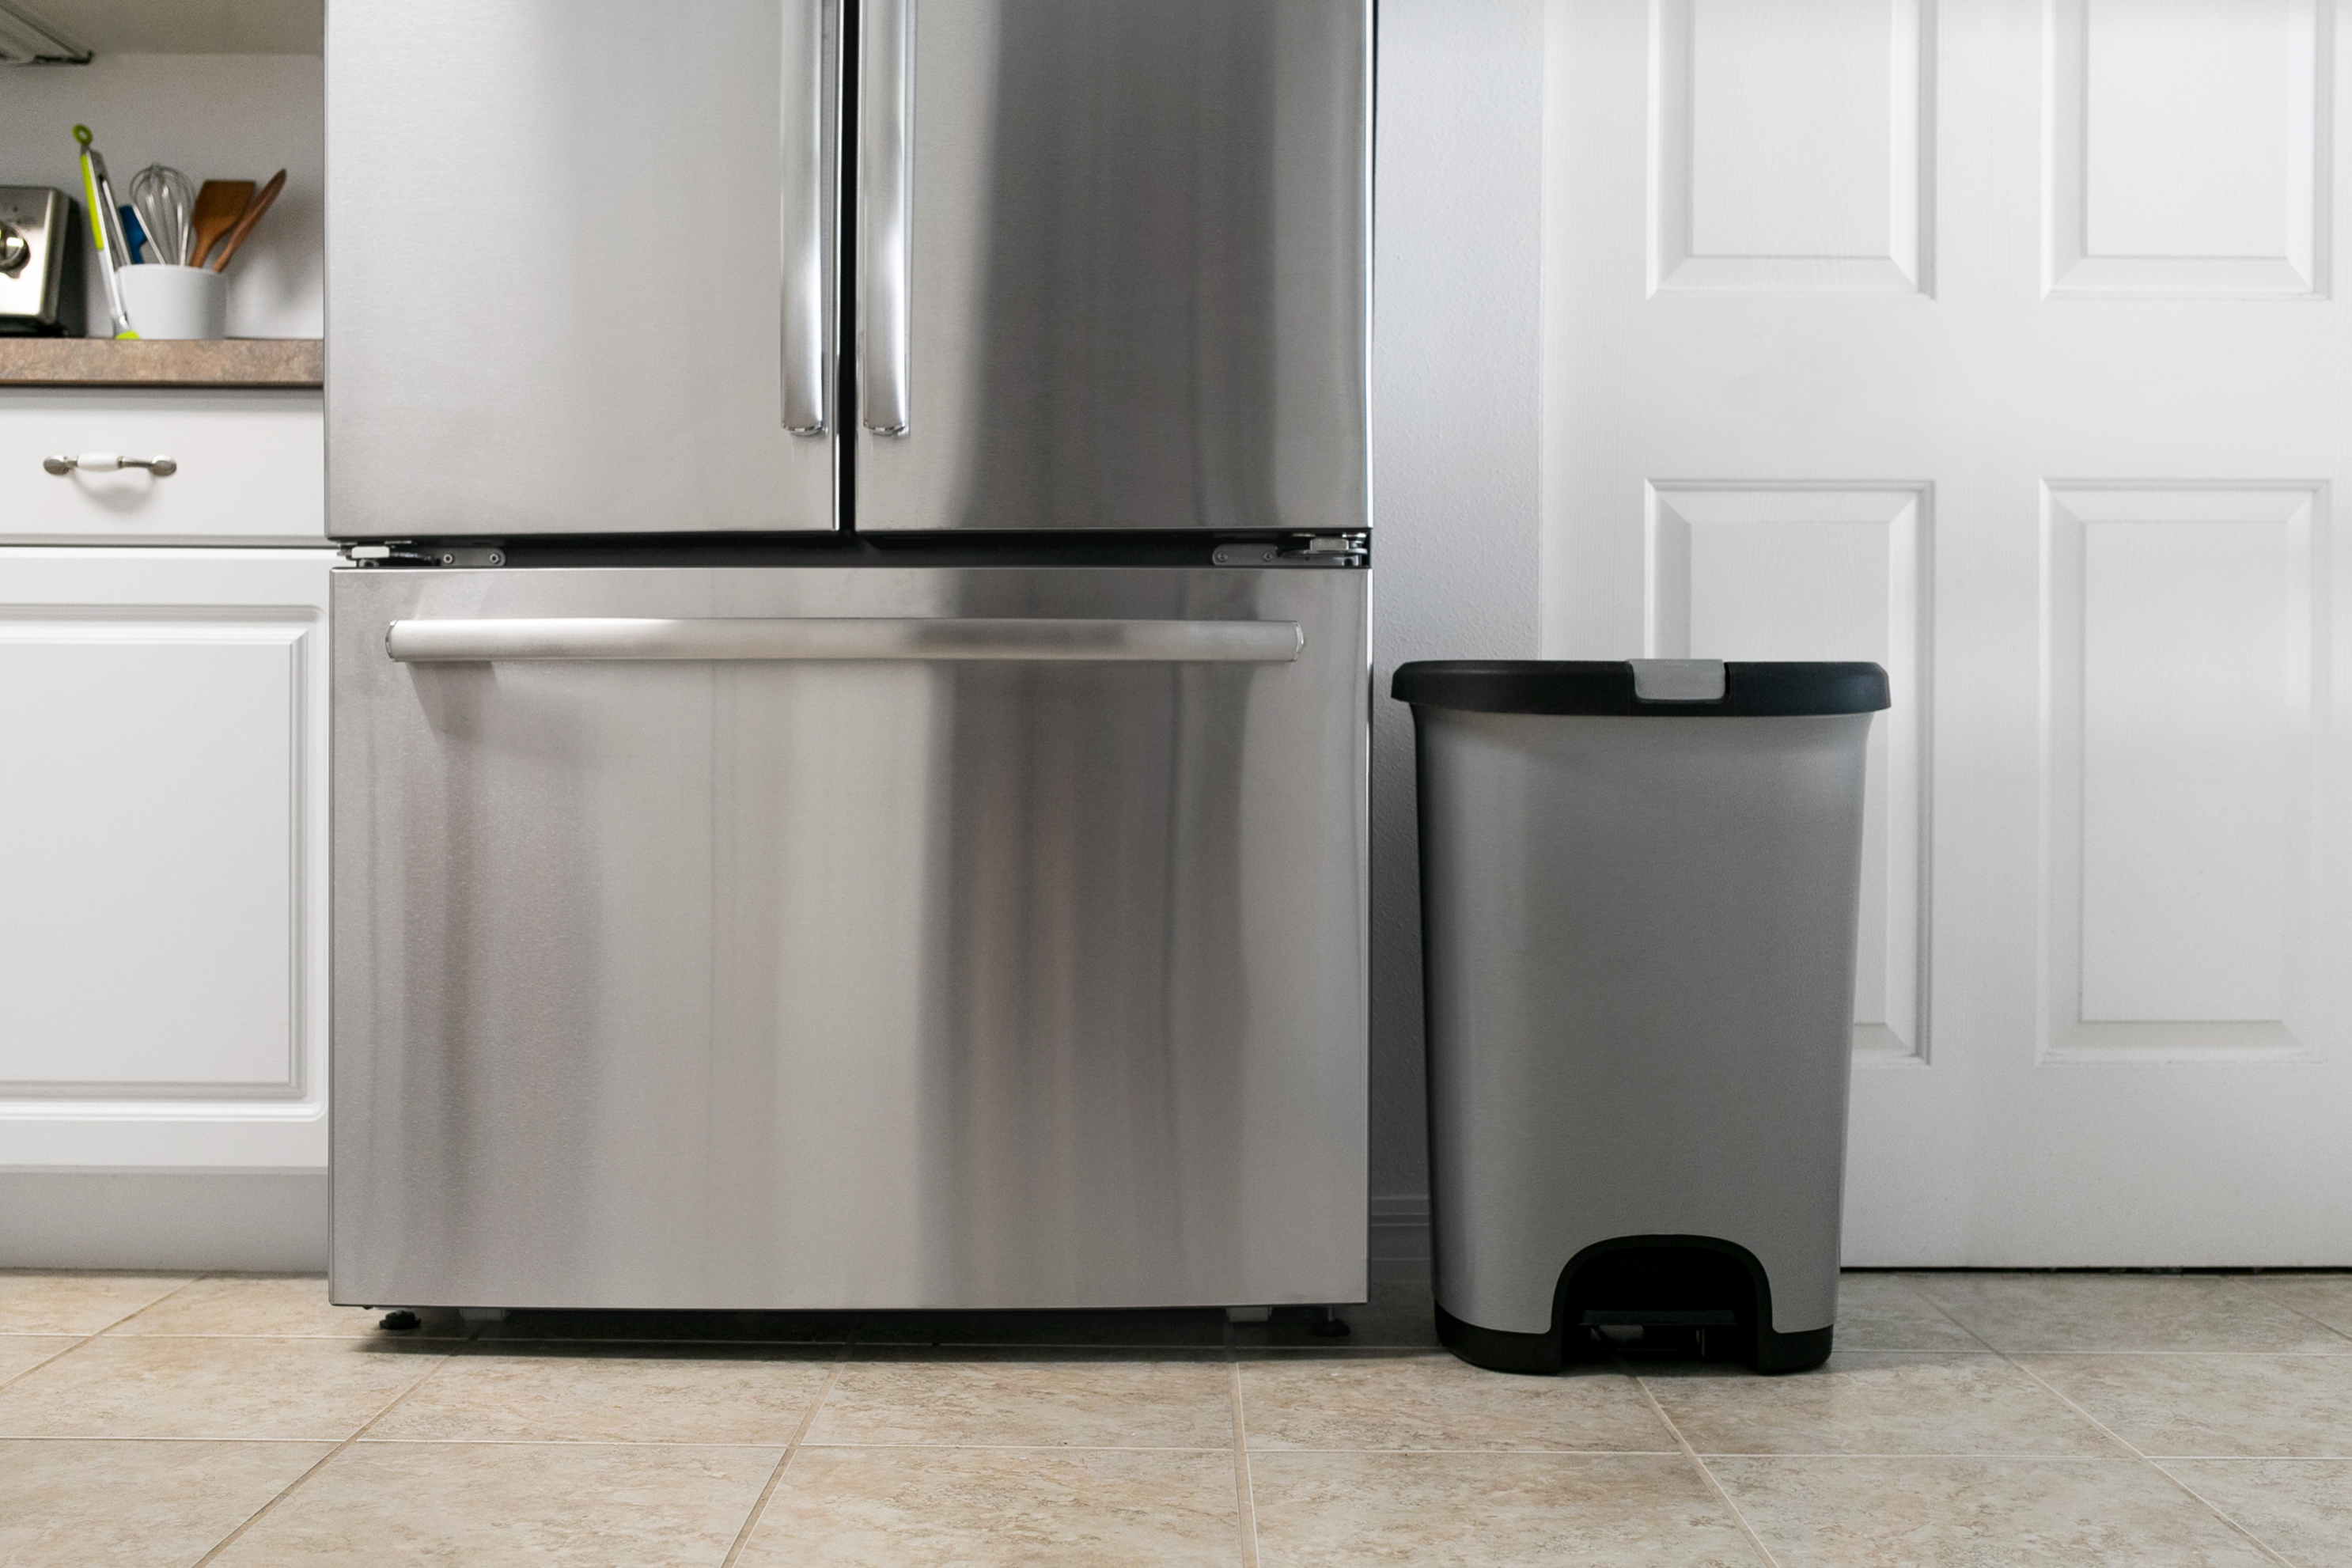 How To Clean a Kitchen Trash Can